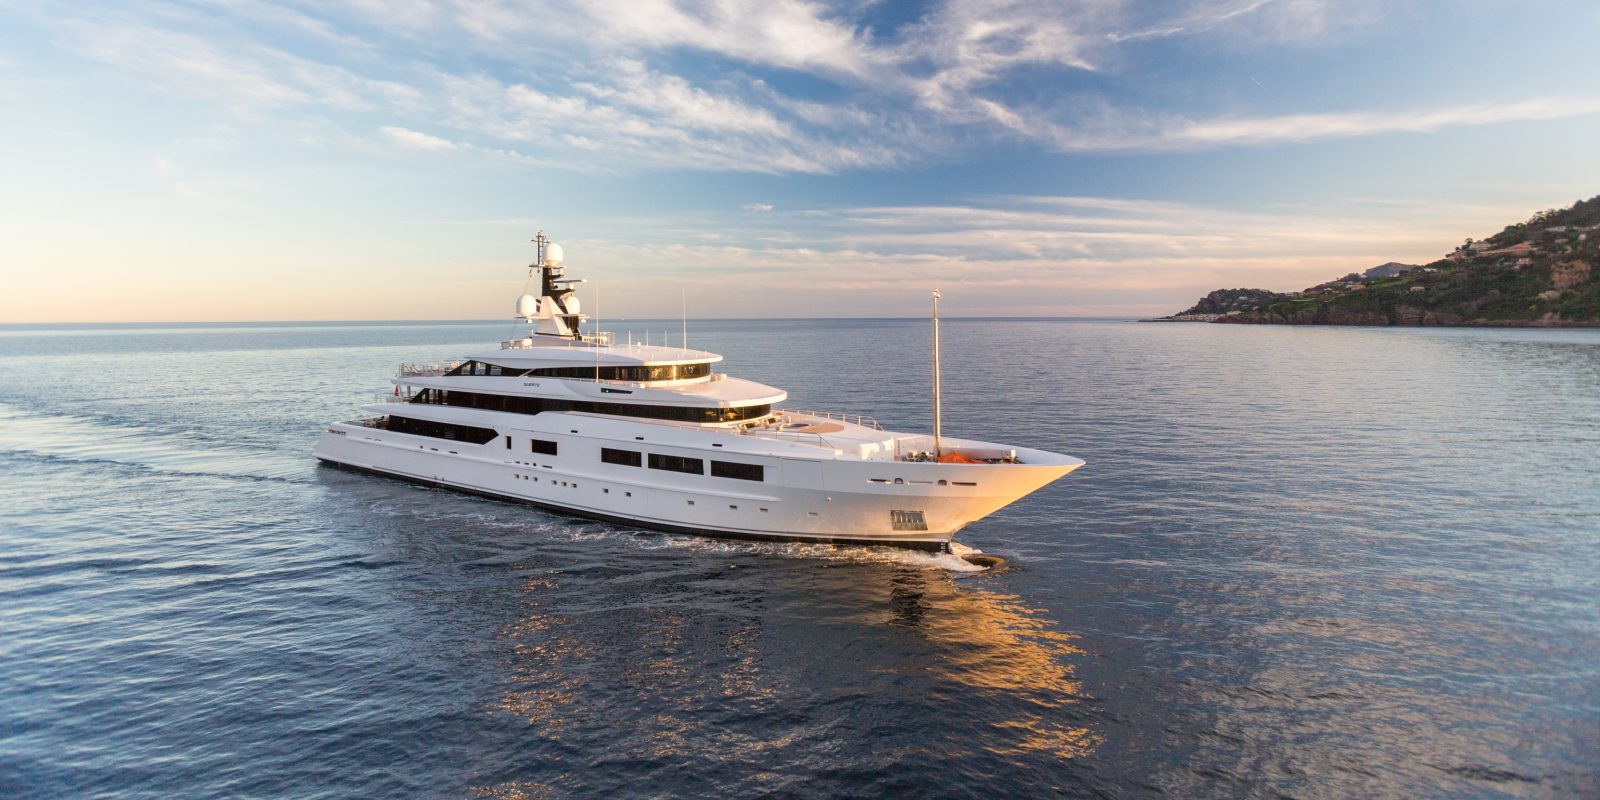 New superyacht for sale cruising the mediterranean